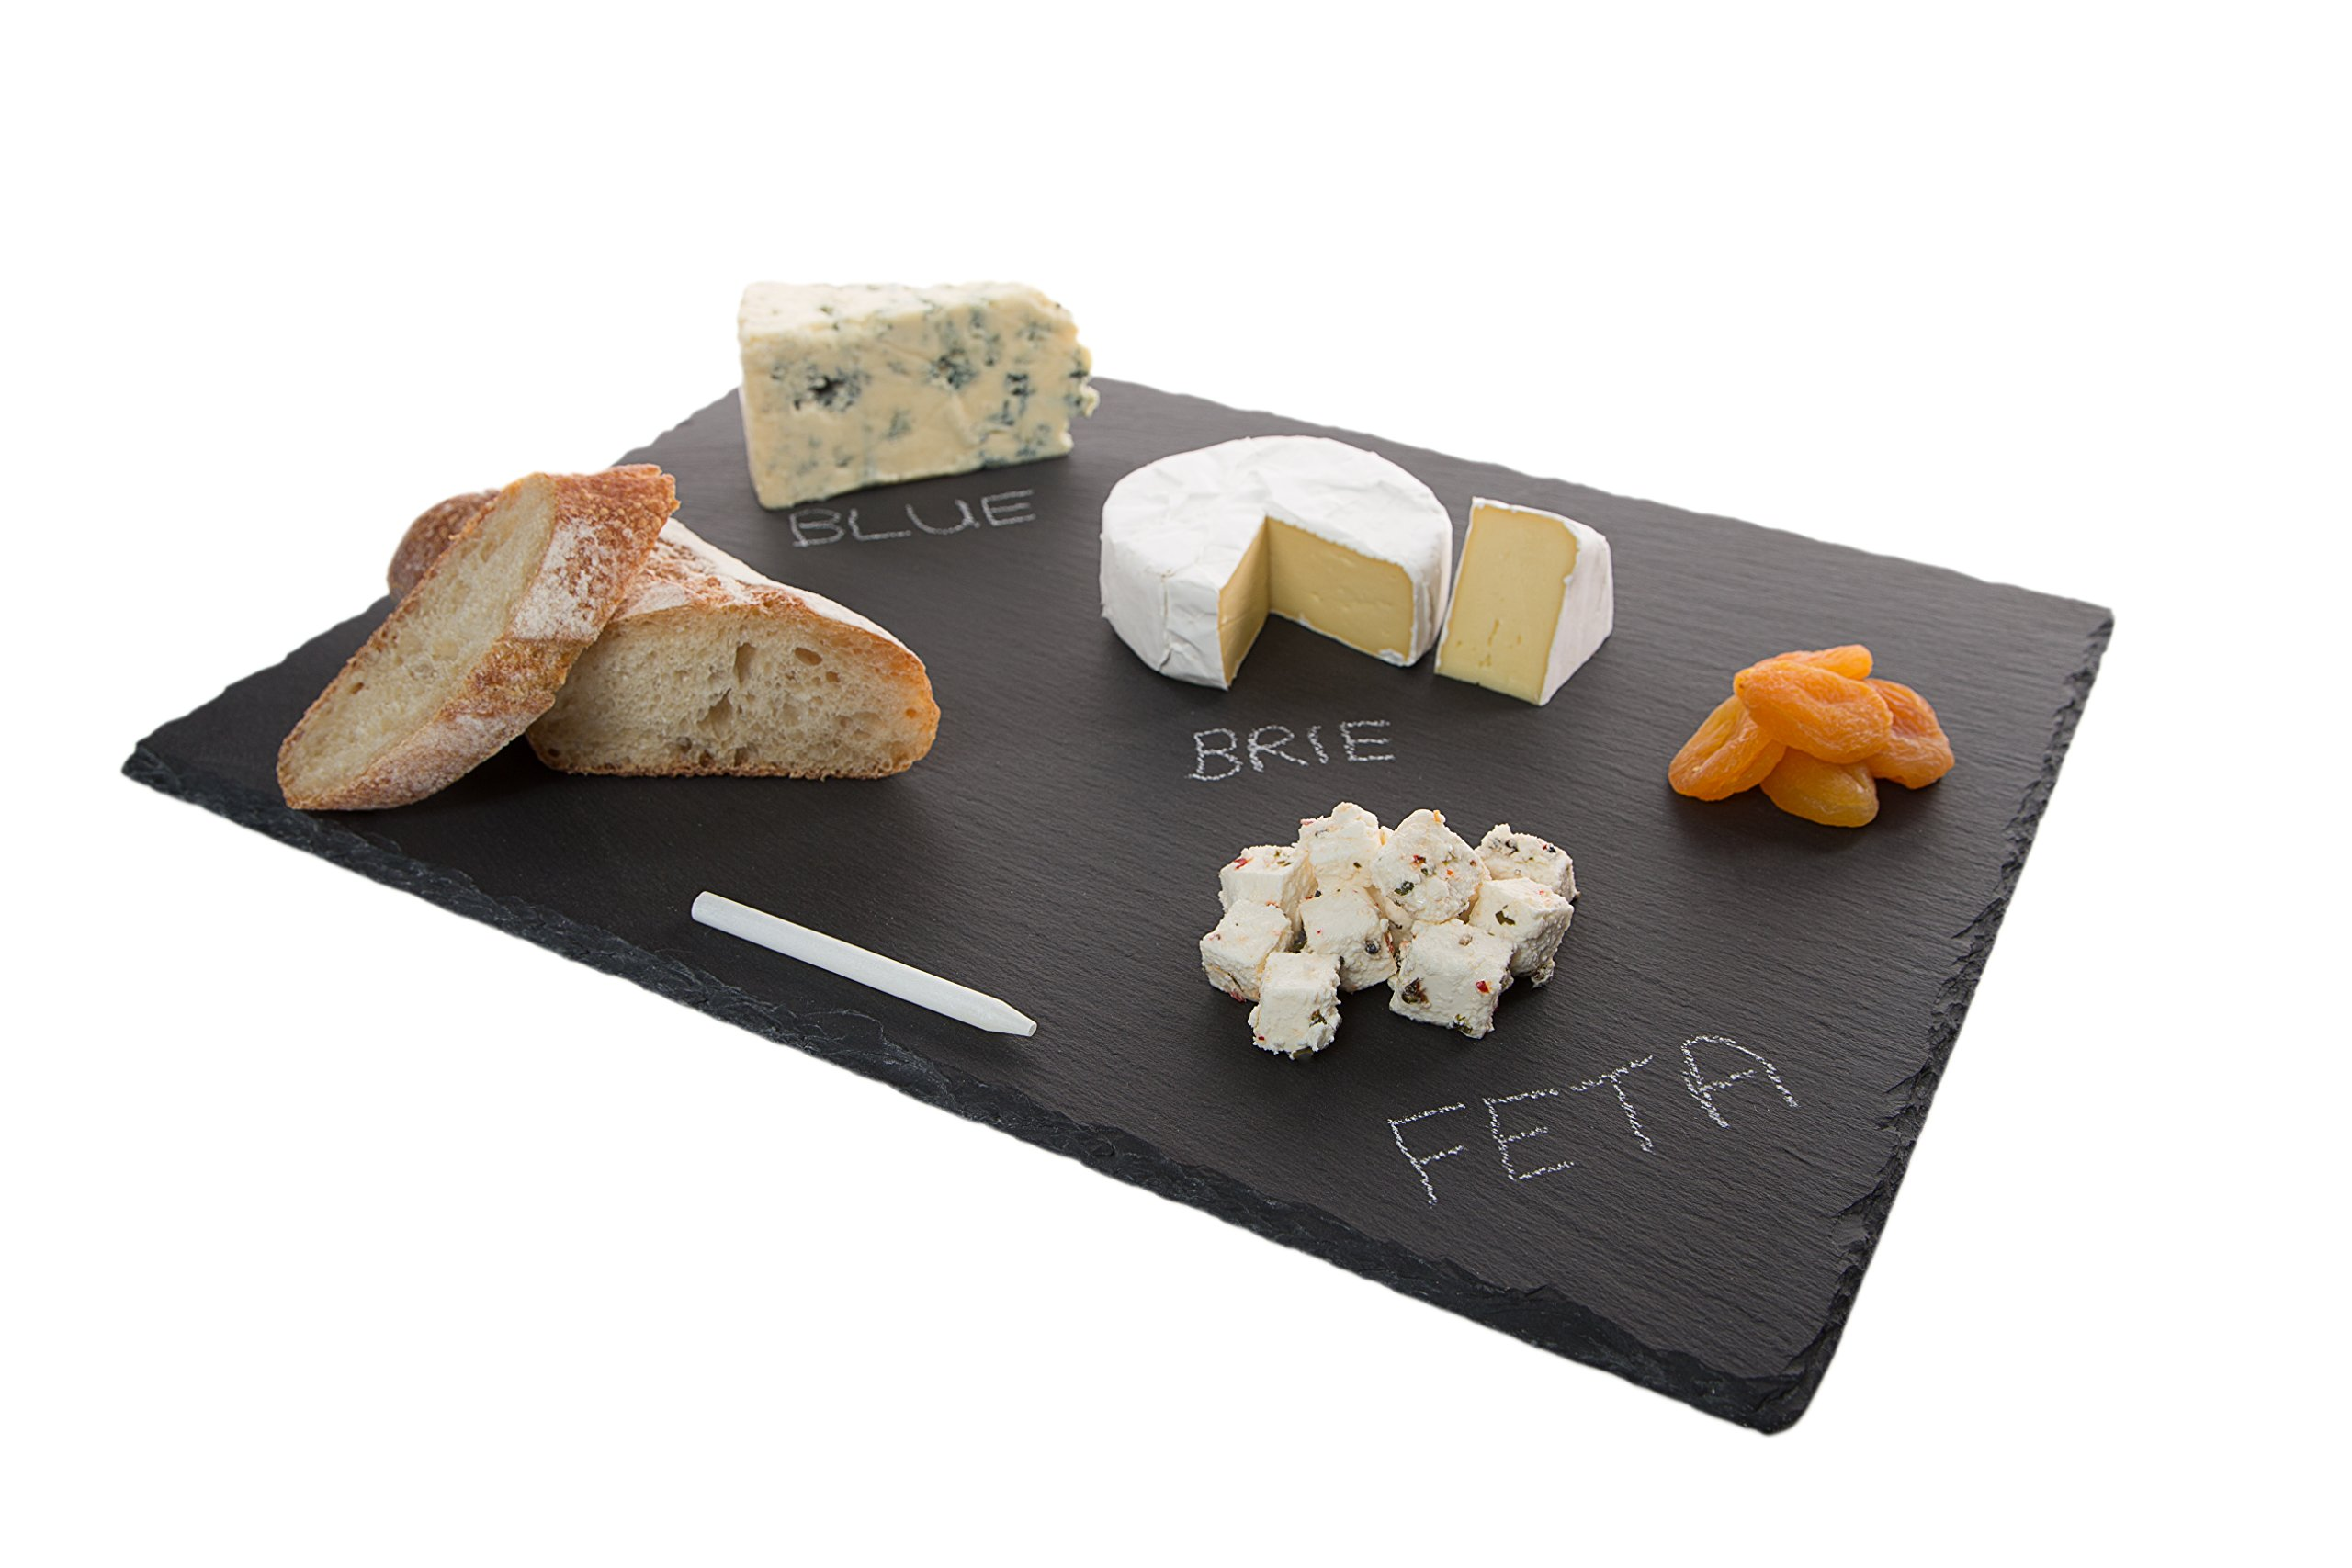 4 Sizes to Choose:  Large Stone Age Slate cheese boards (12''x16'' Serving Platter) with Soap Stone Chalk